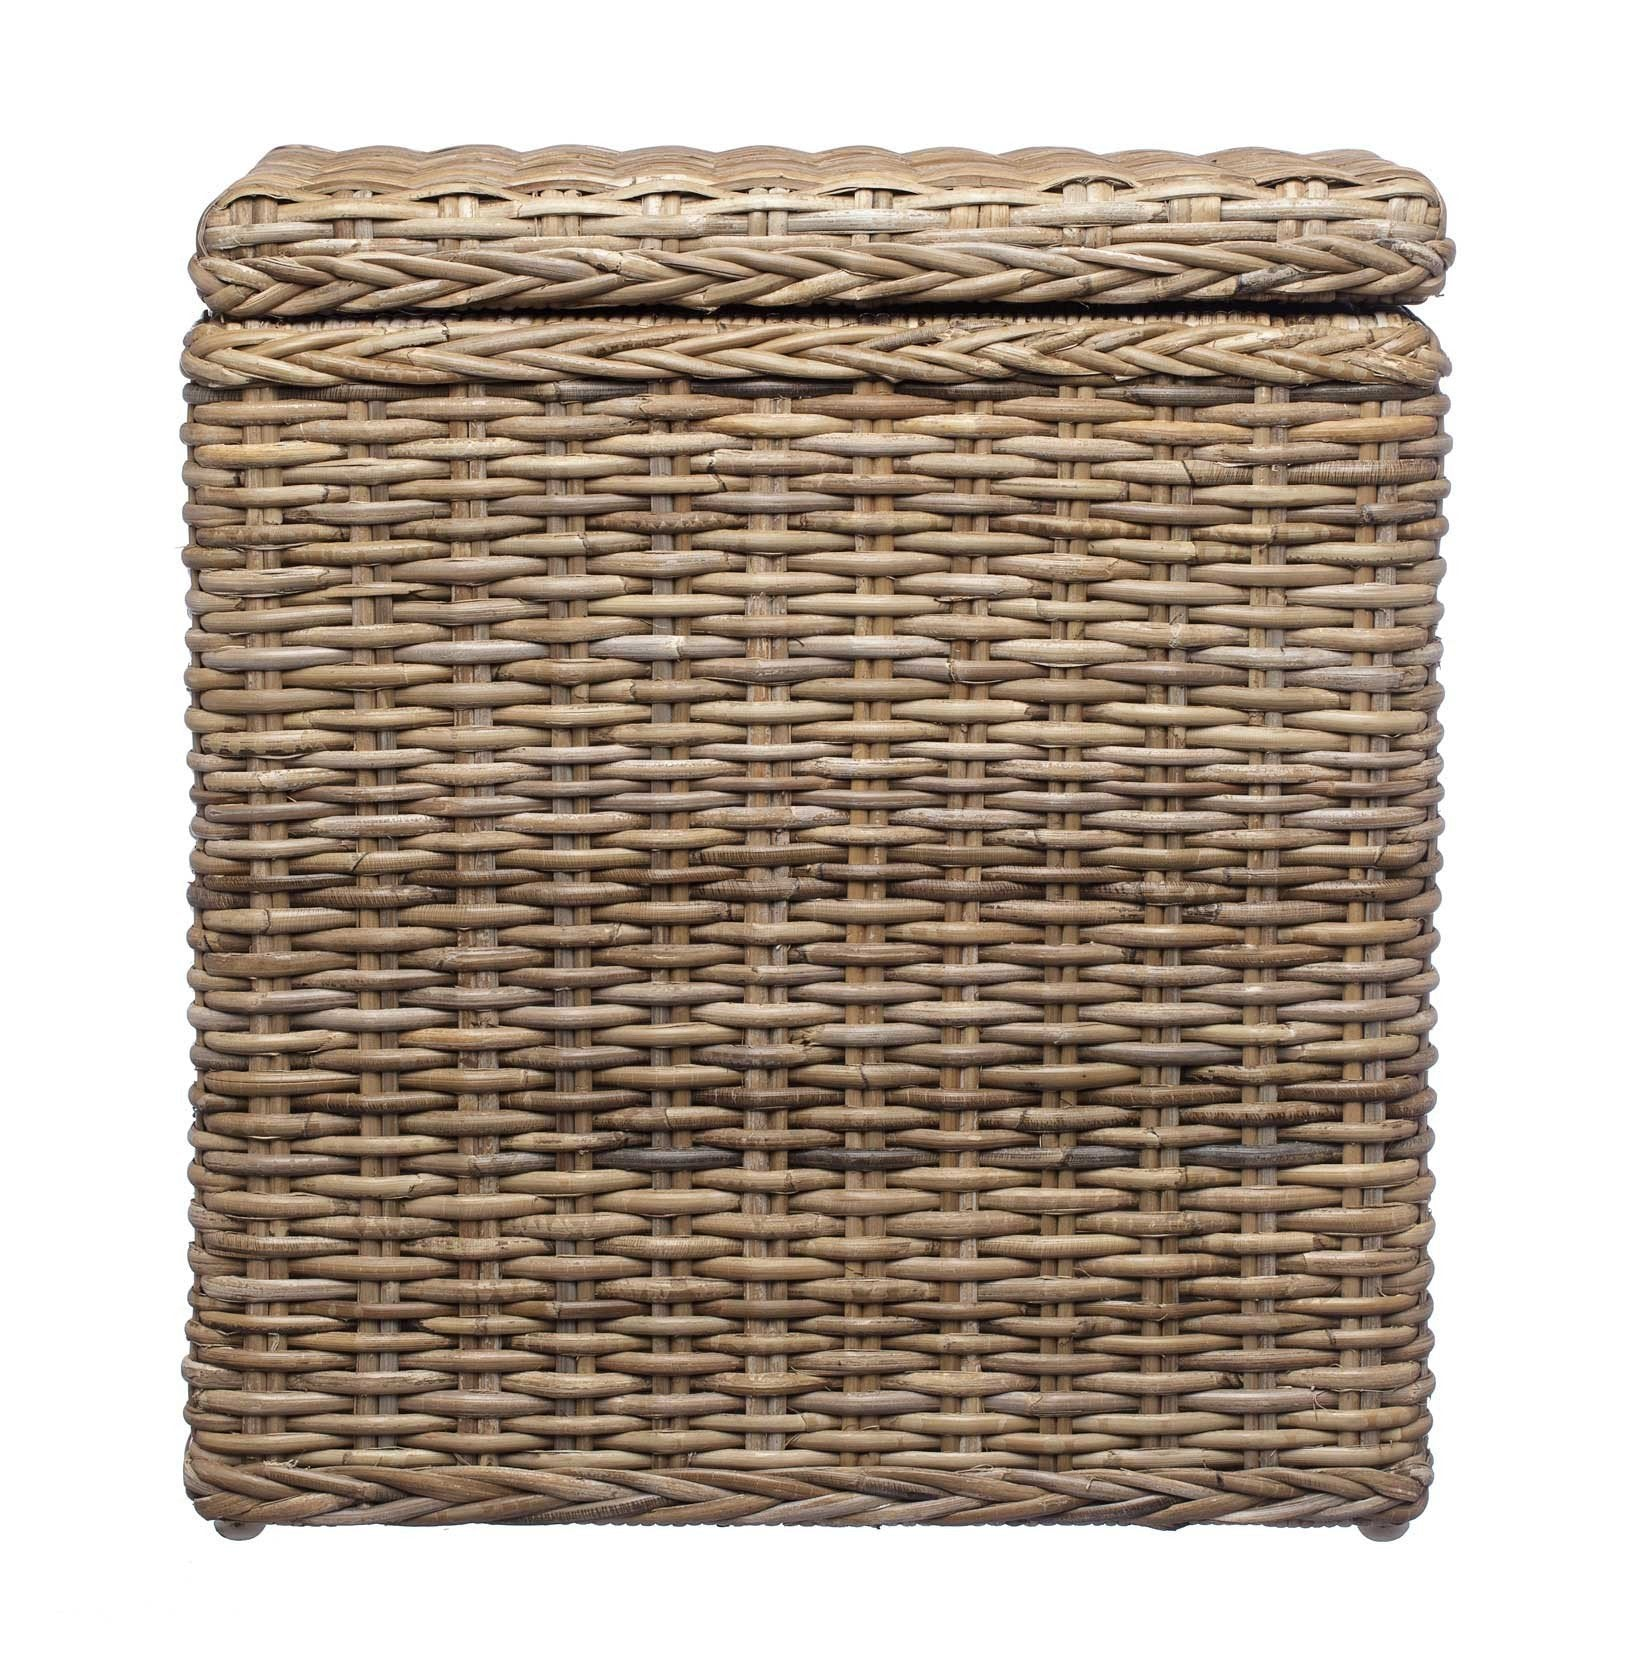 Java laundry basket, grey brown, 100% rattan & 100% cotton